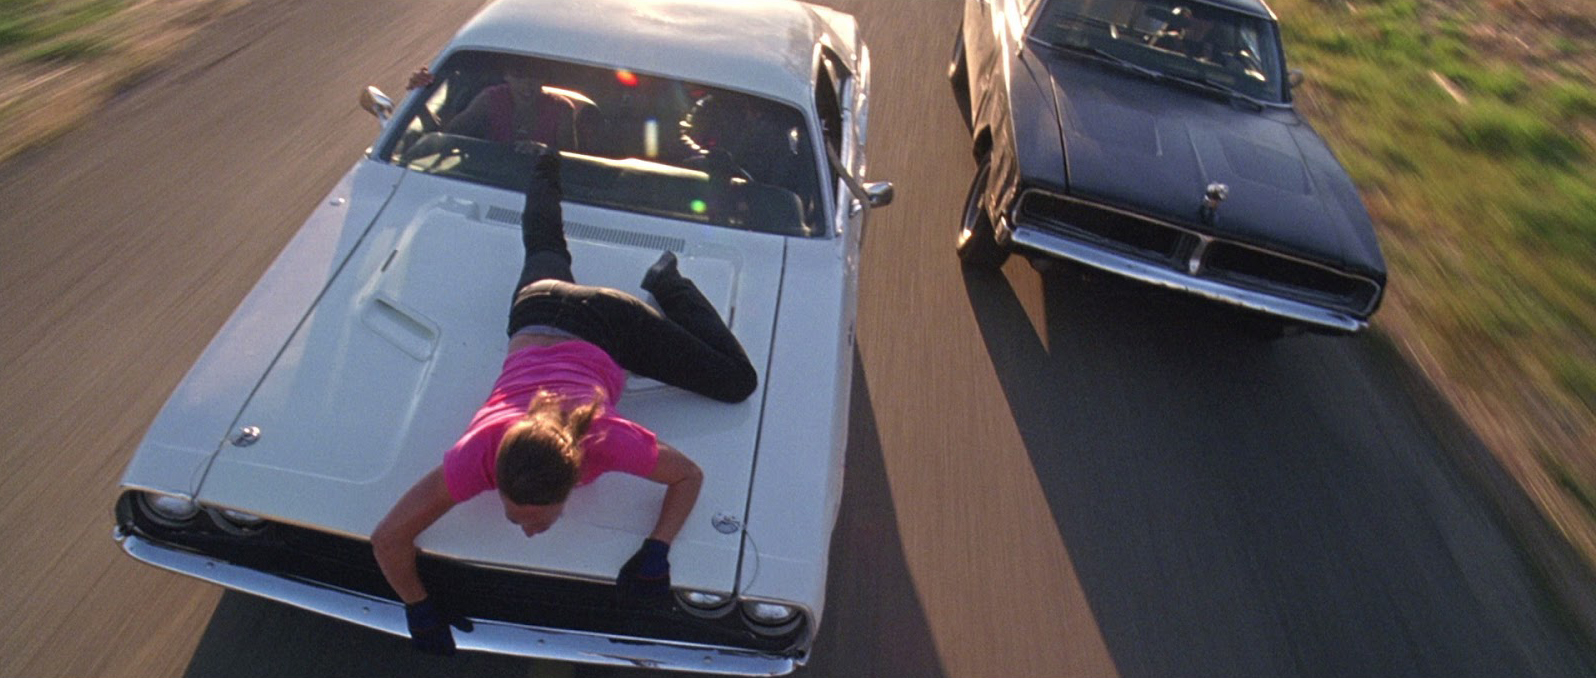 Image result for death proof